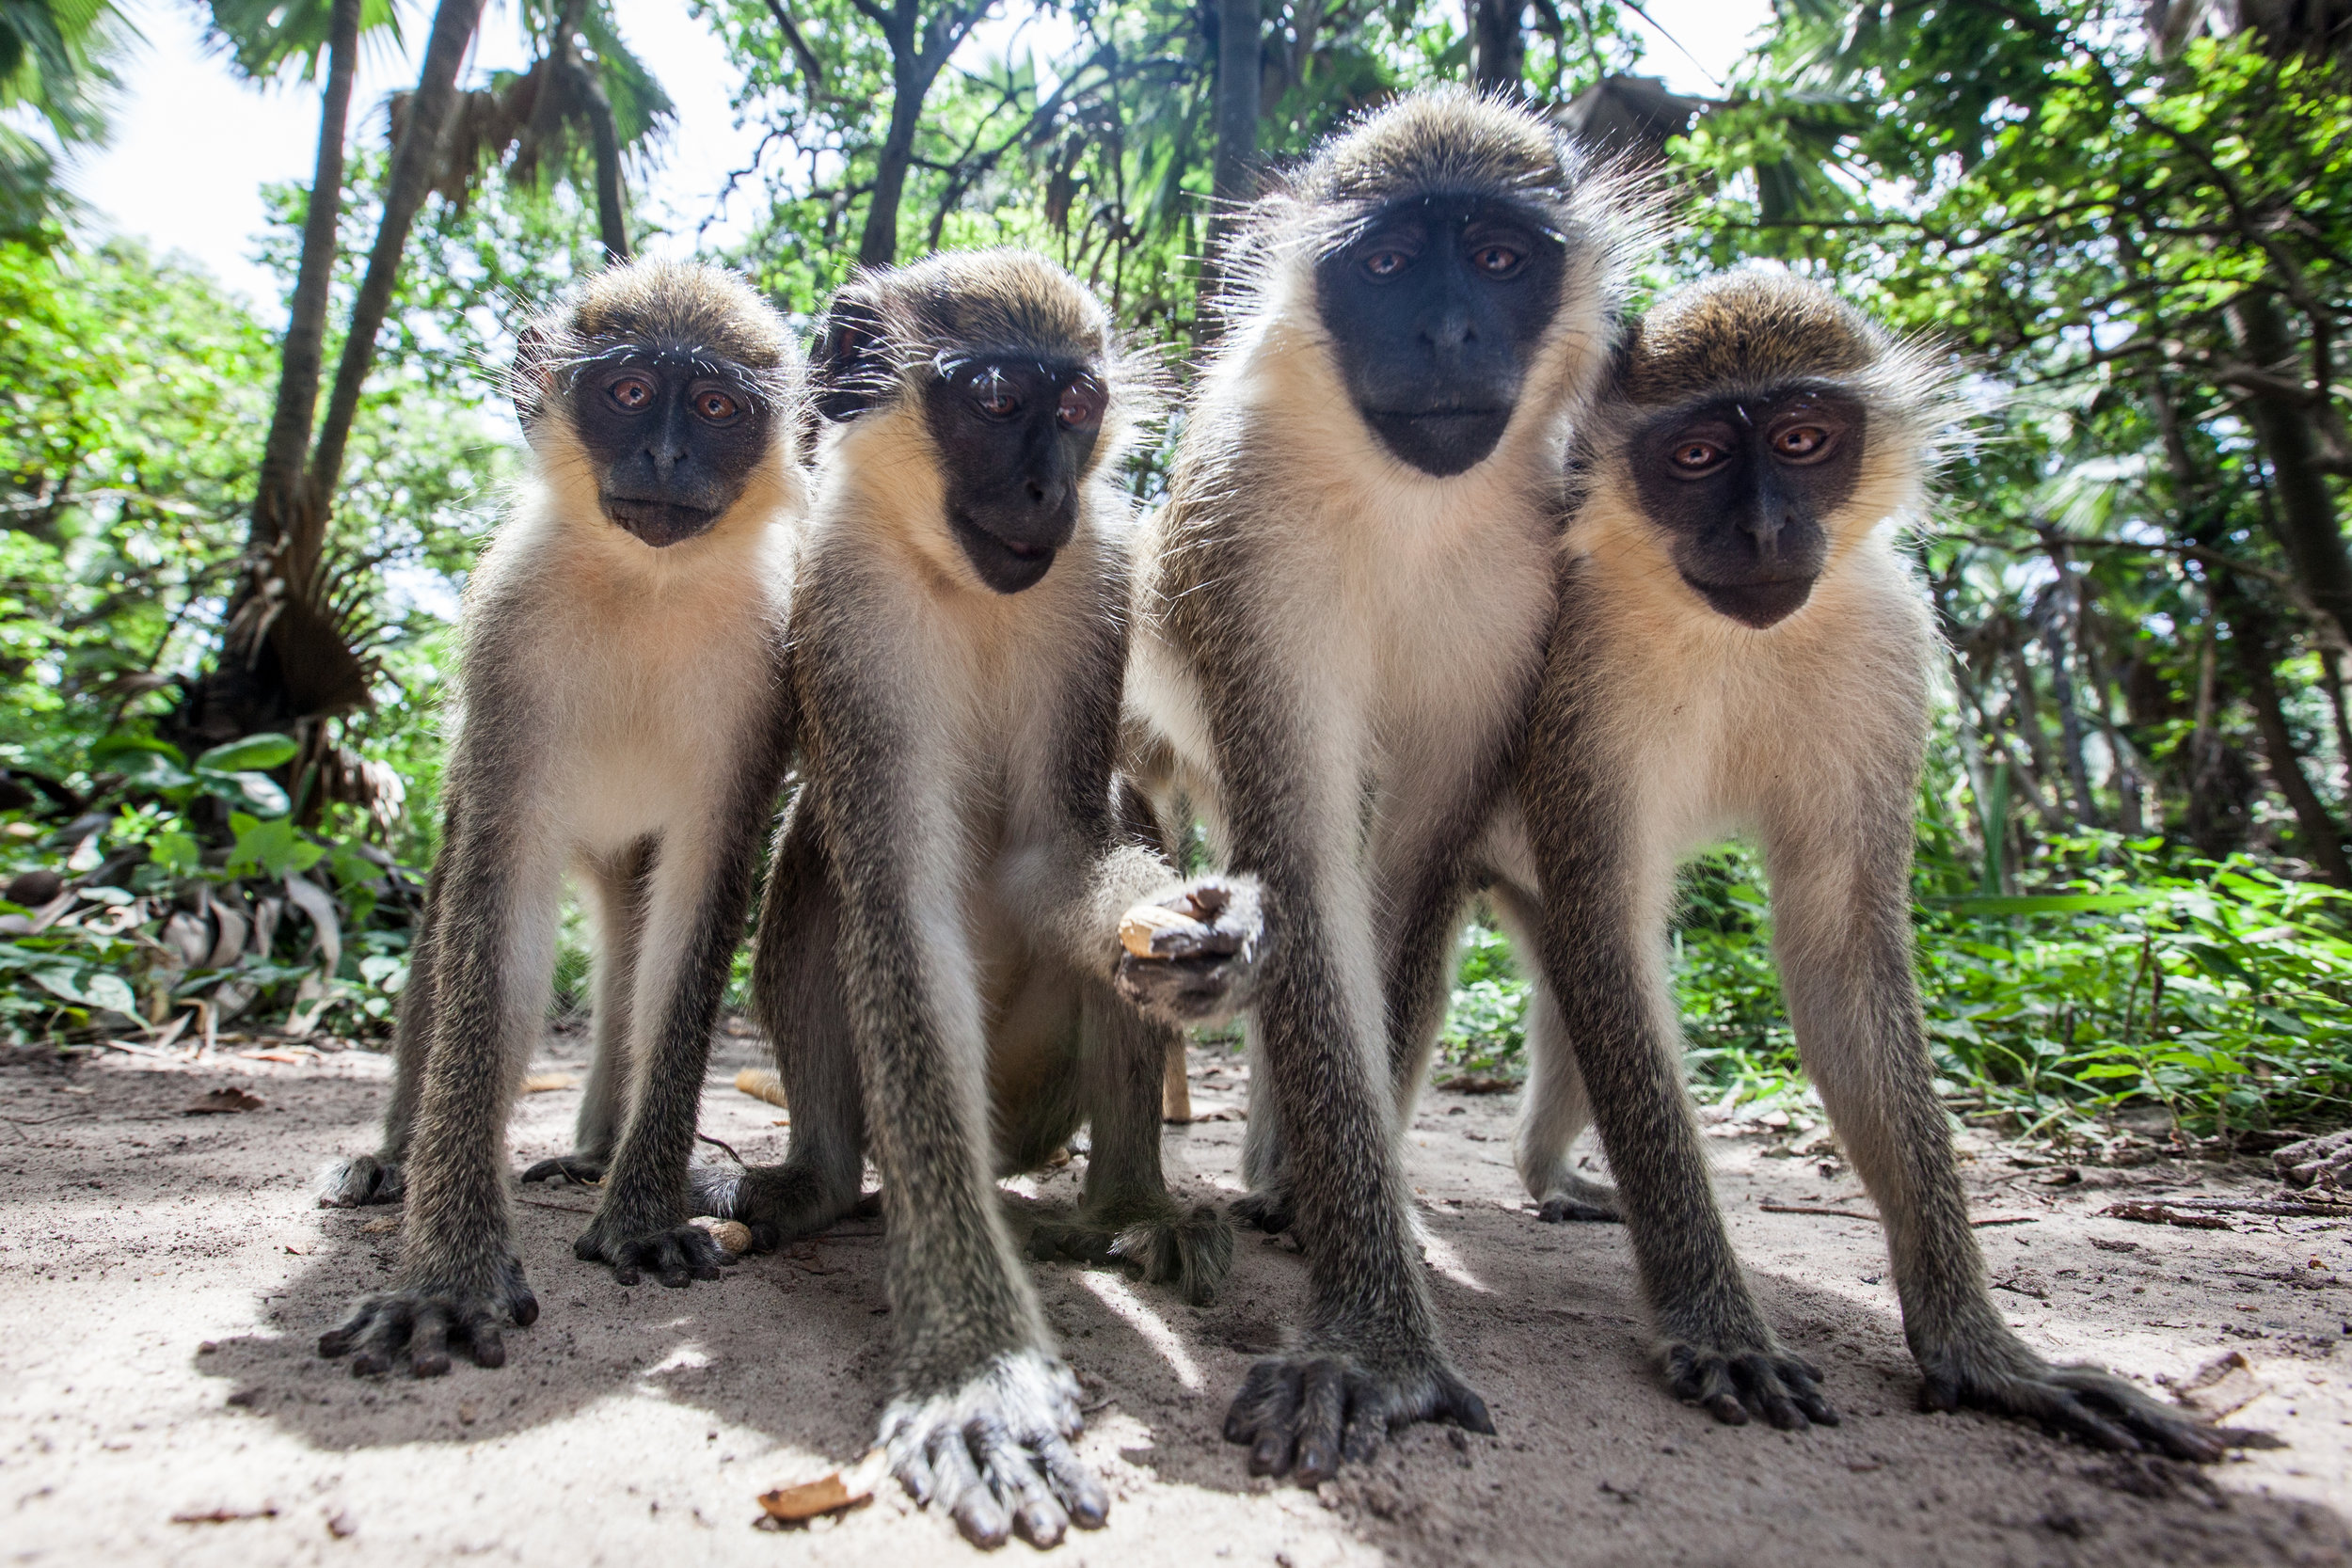 Four monkeys line up for a group shot in the Gambia.